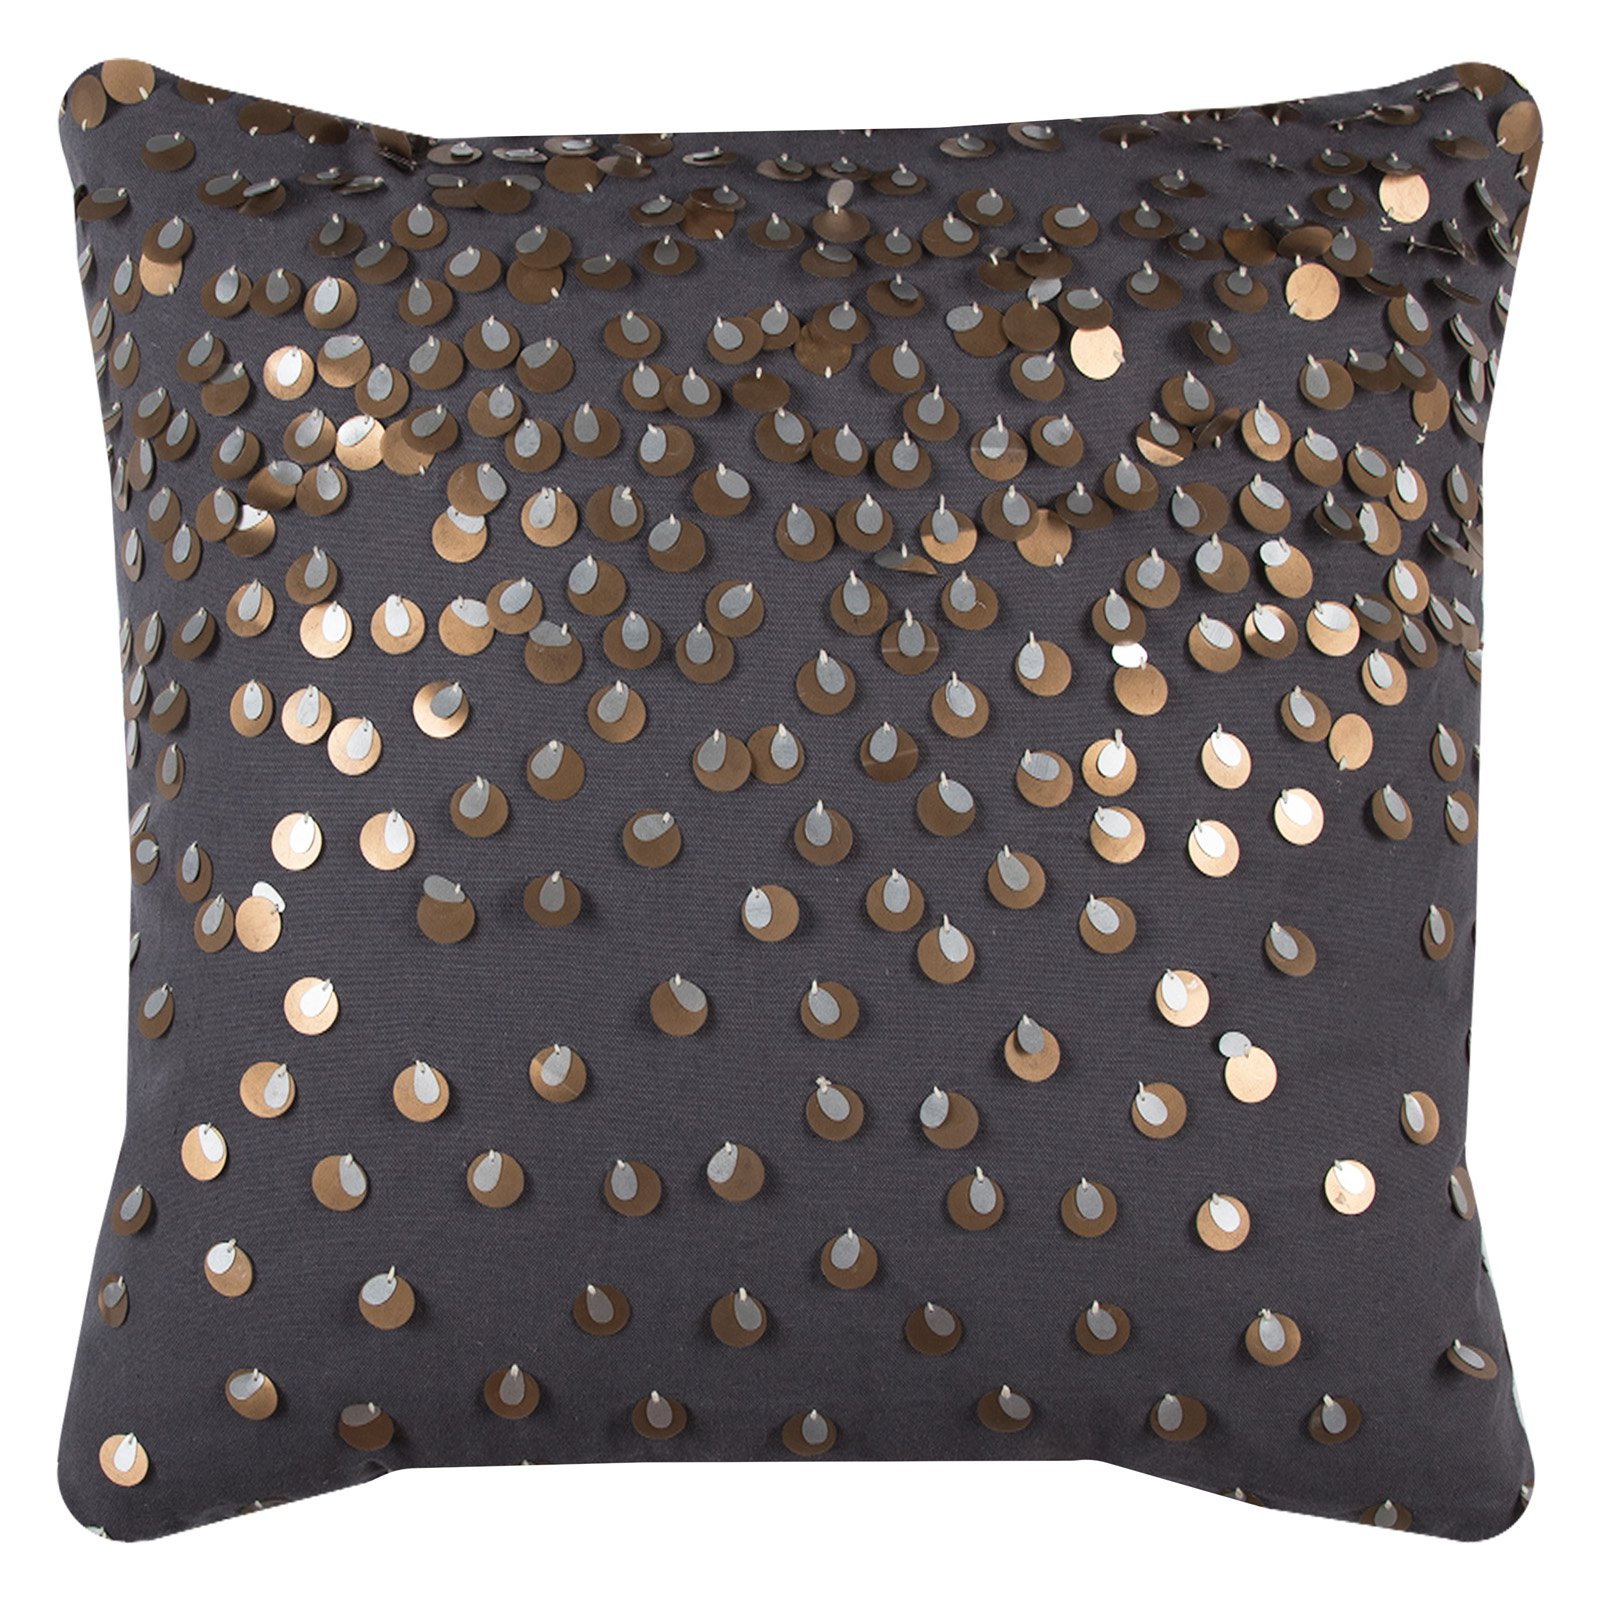 "Rizzy Home Decorative Poly Filled Throw Pillow Sequin 20""X20"" Dark Grey"